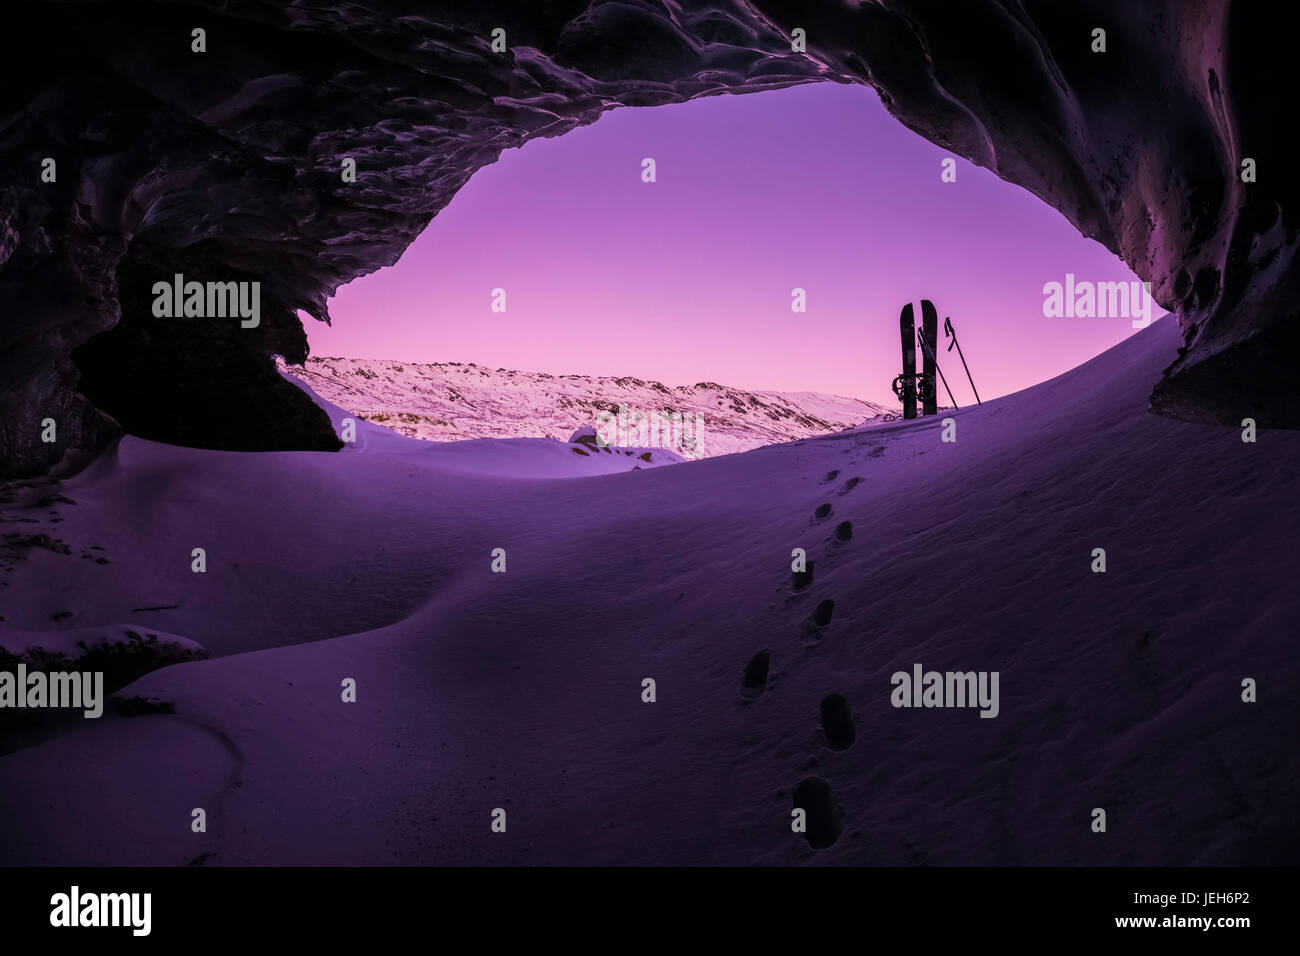 Footprints lead toward a splitboard placed at the entrance of an ice cave within Canwell Glacier in the Alaska Range - Stock Image